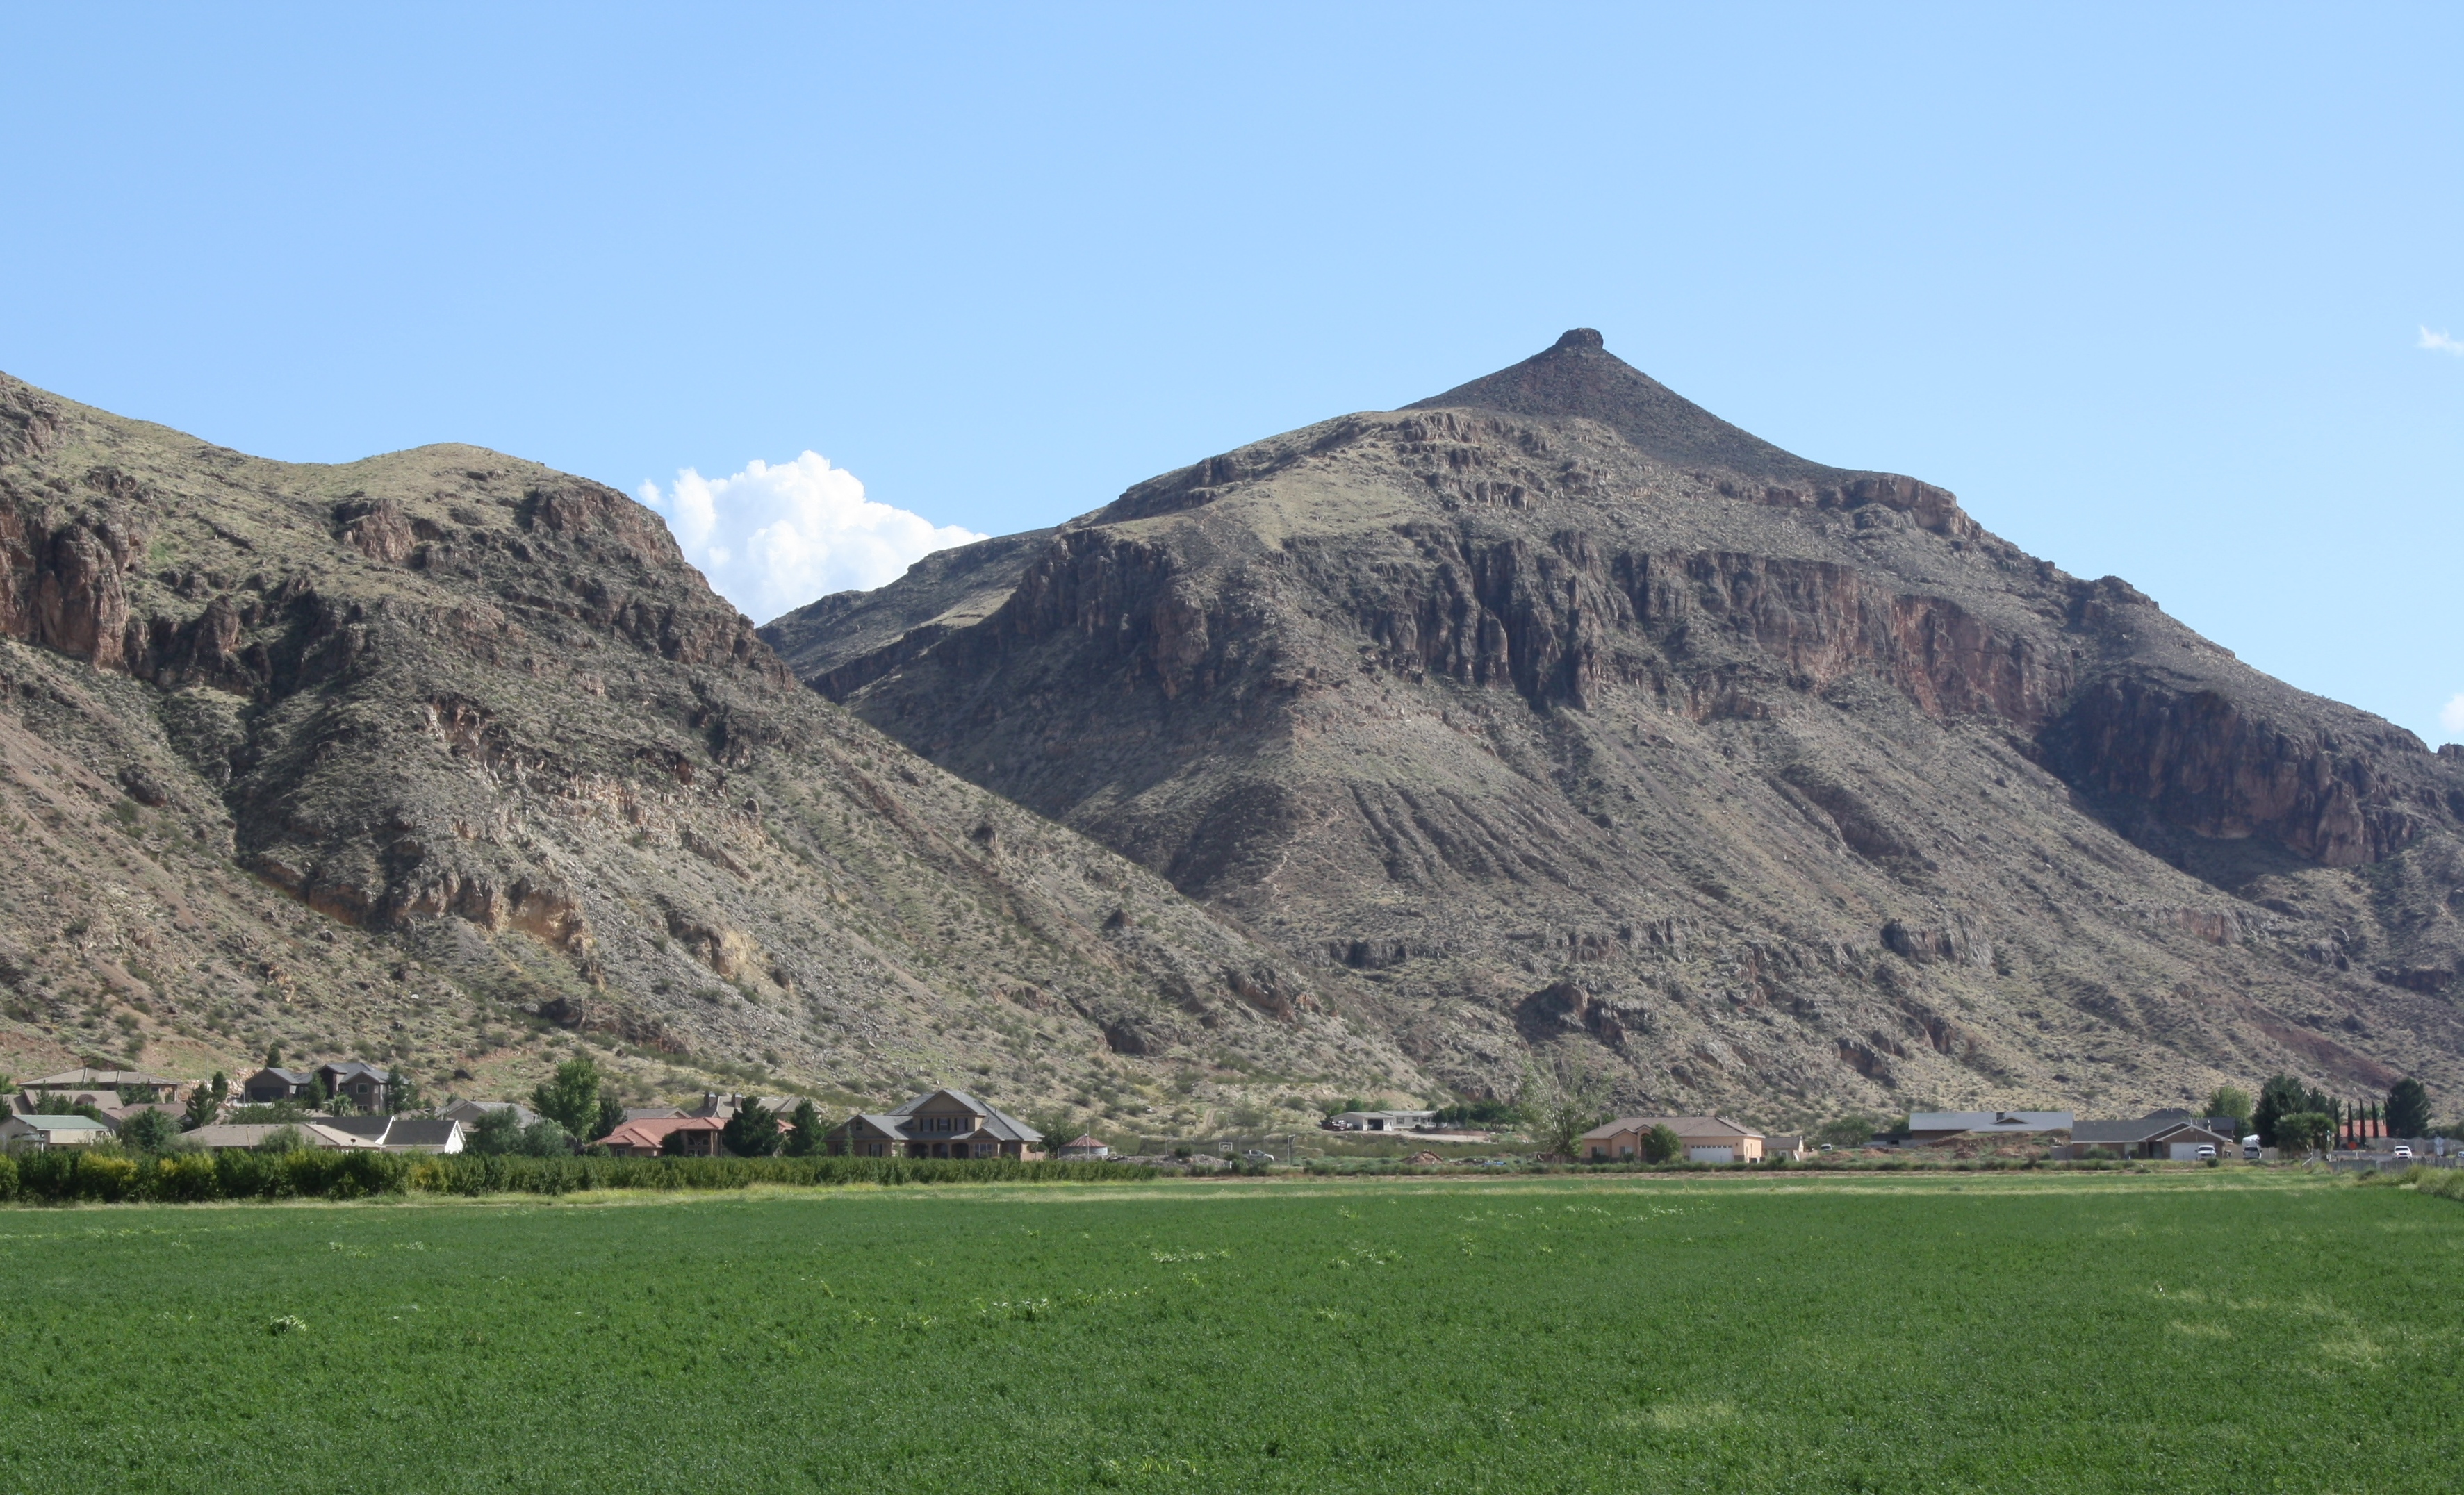 Mollies Nipple, prominent of above the south end of Hurricane, Utah